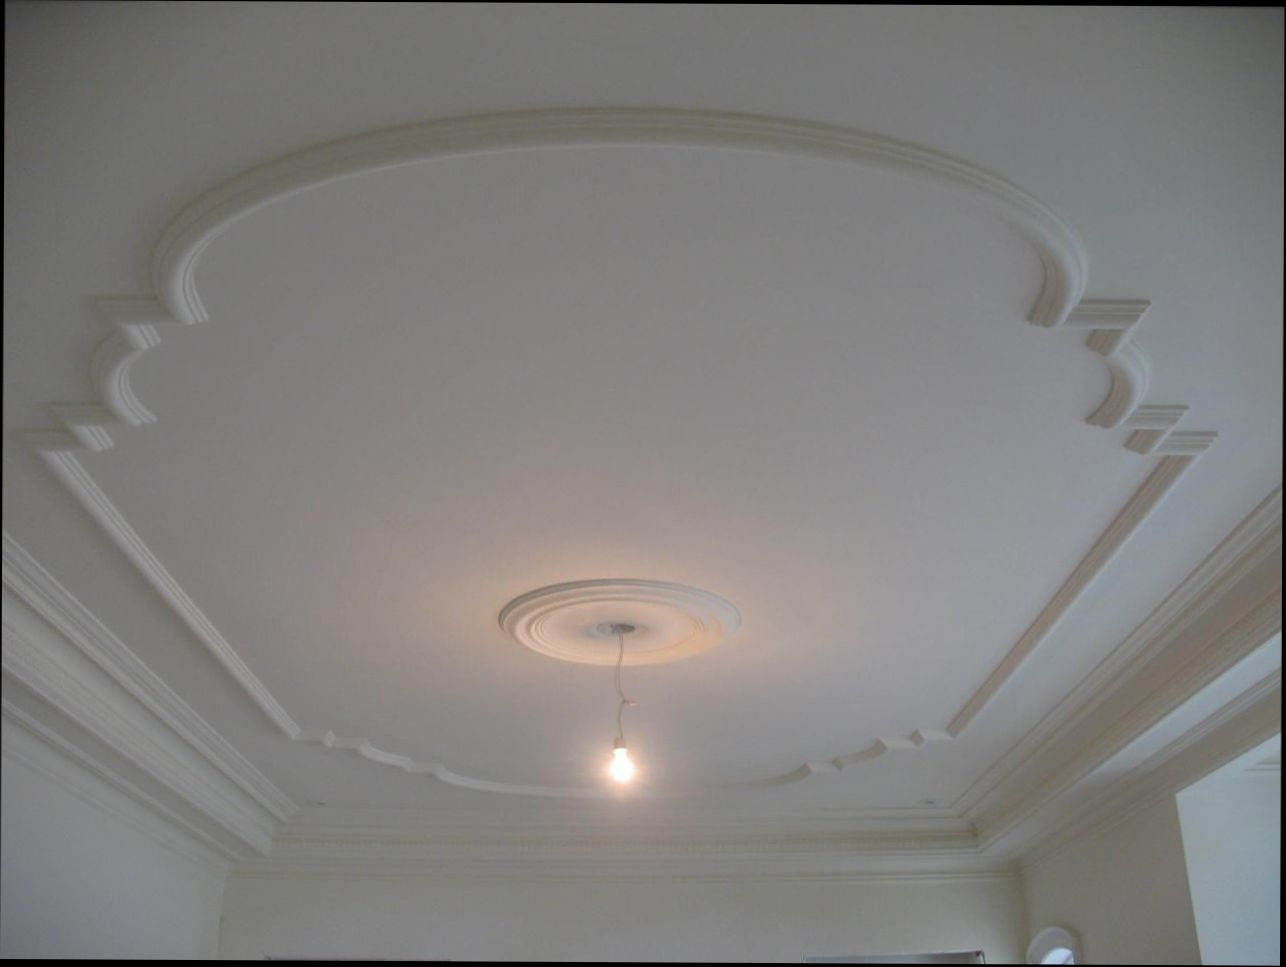 Pop Best House Design Without Ceiling Minus Plus Pop Designs On Roof Avec Pop Best House Design With Plaster